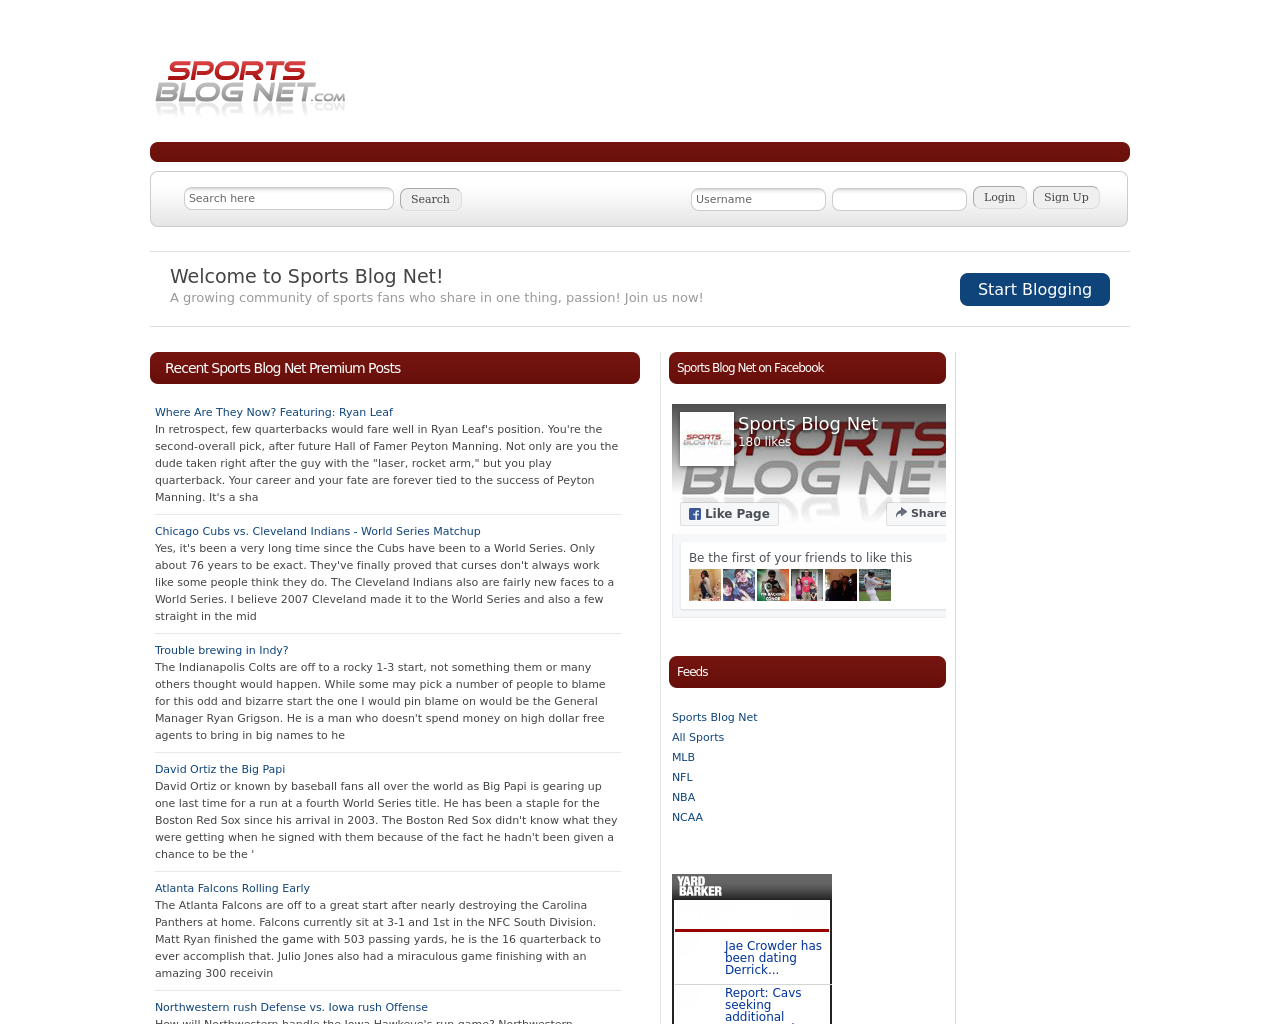 SPORTS-BLOG-NET.COM-Advertising-Reviews-Pricing